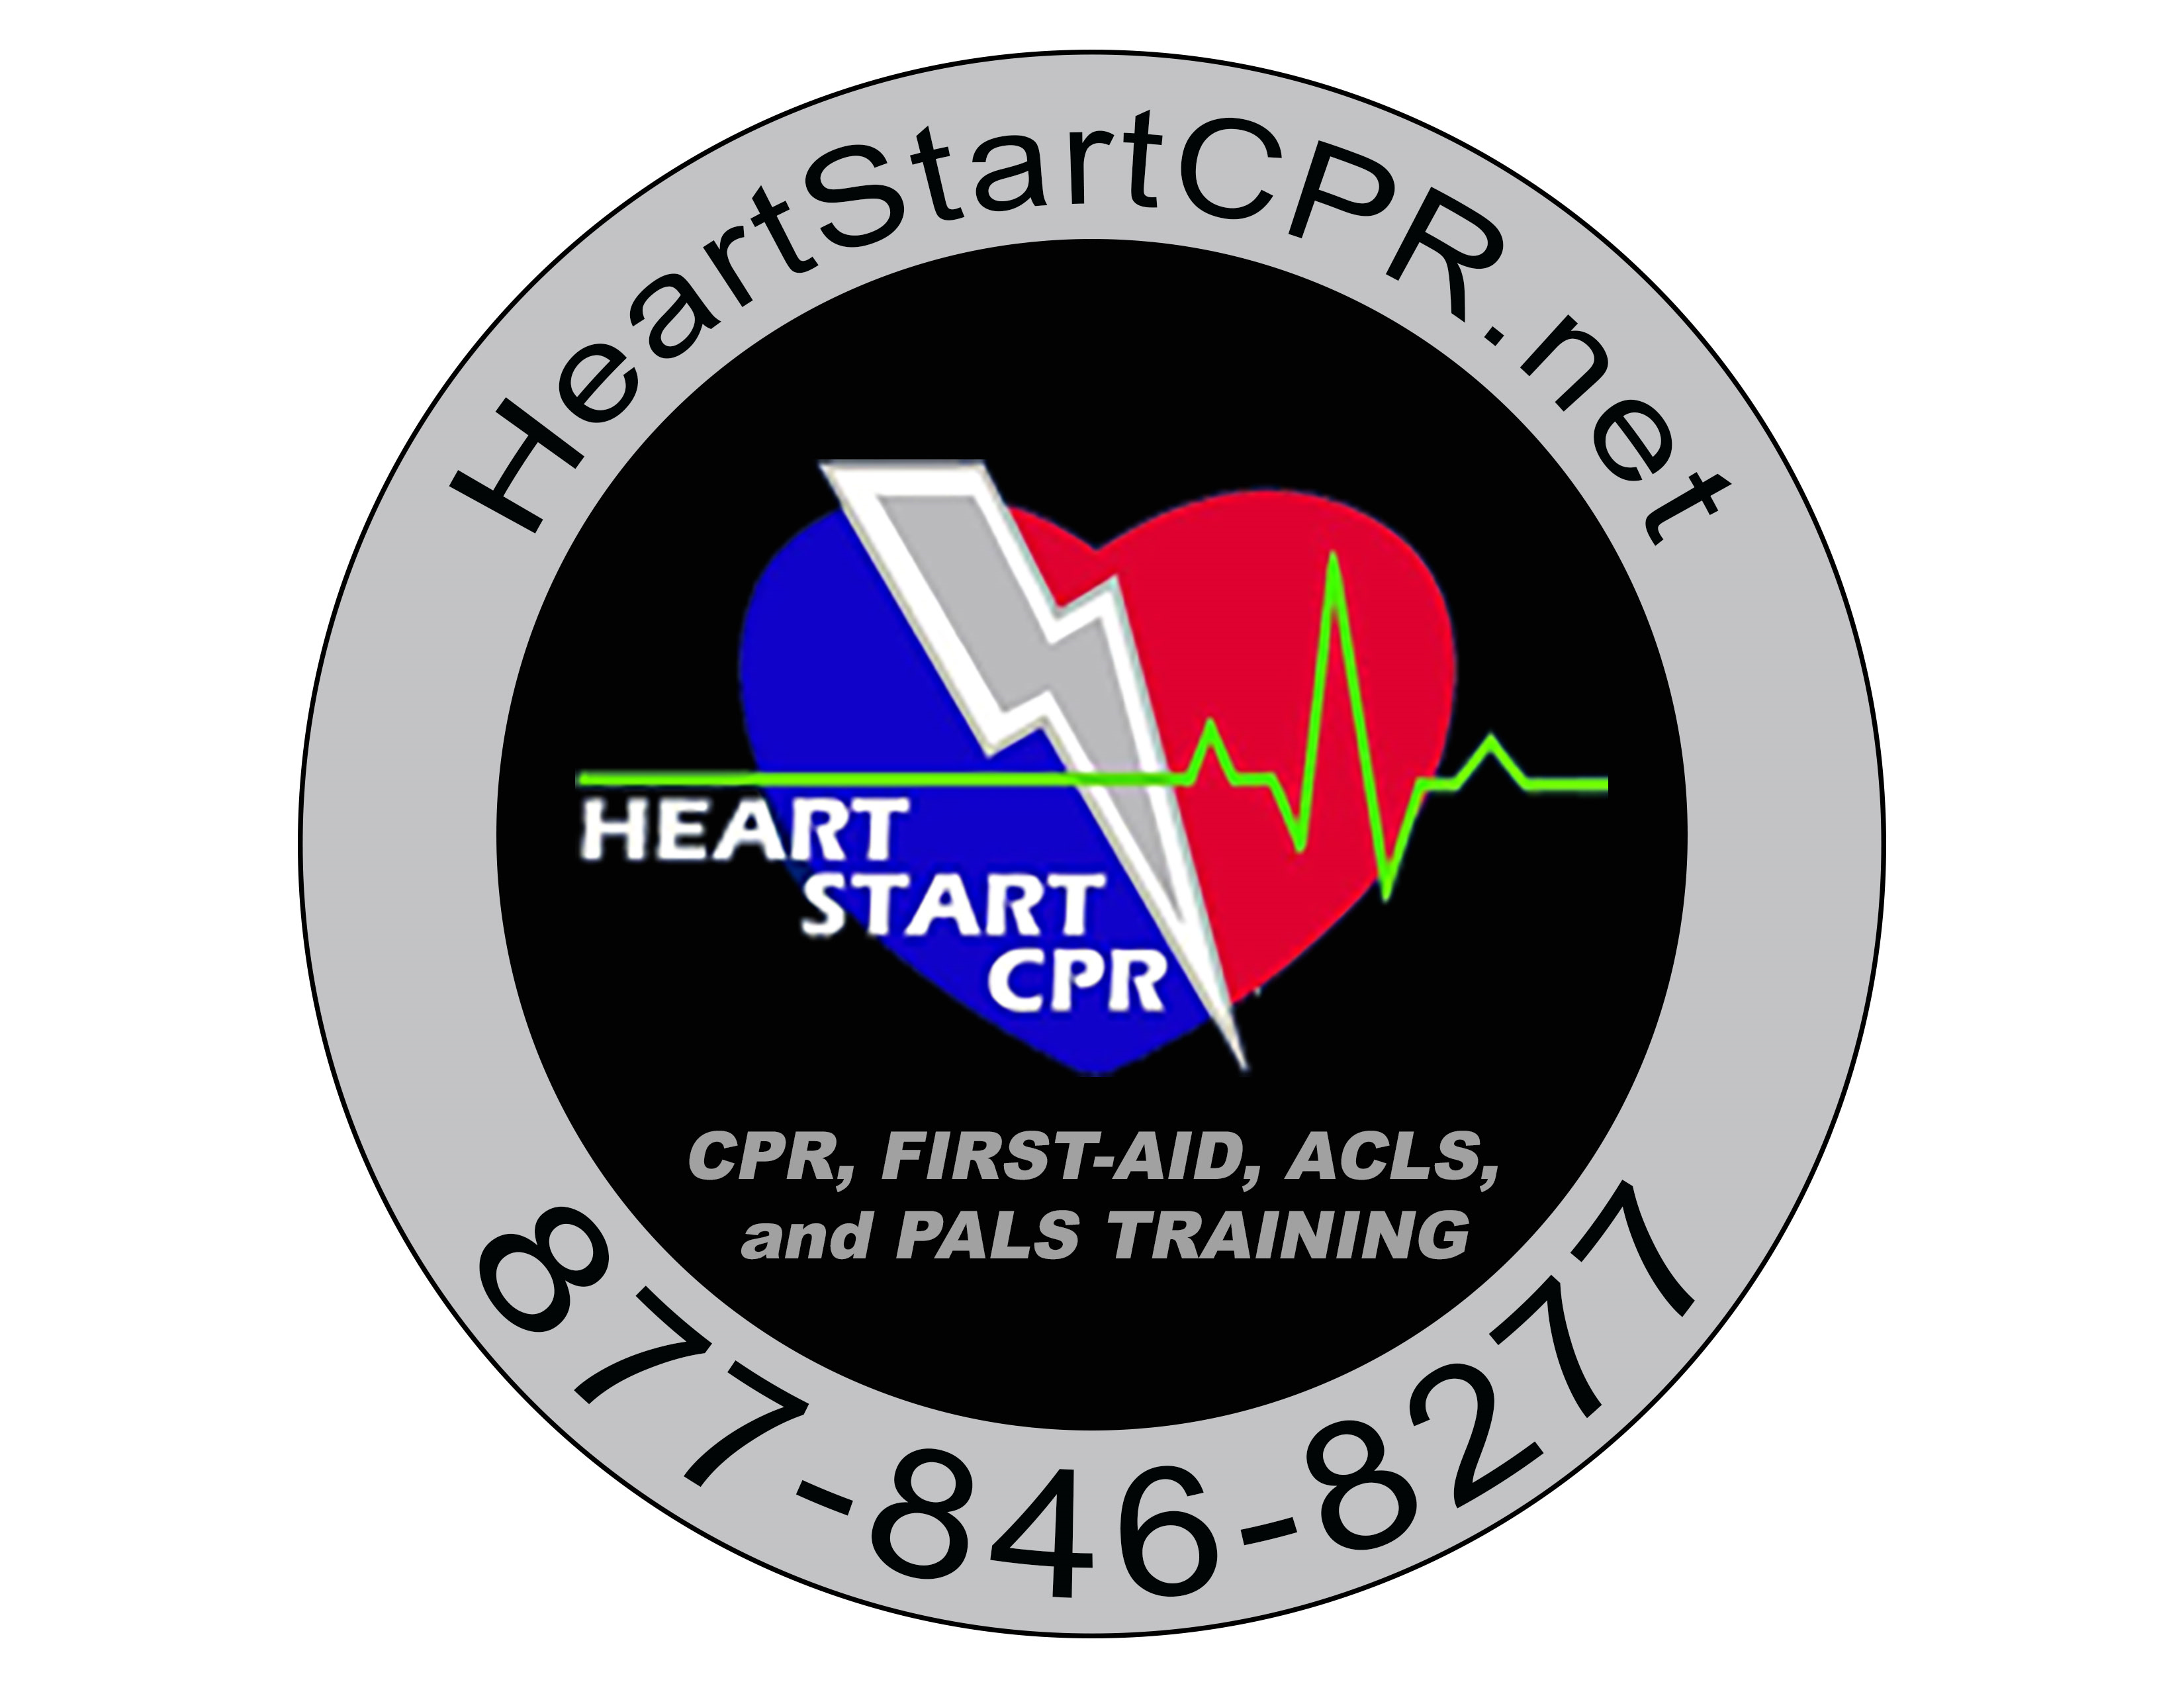 Heart Start CPR Is Teaching Students How To Perform Effective CPR & First-Aid With Classes And Certification